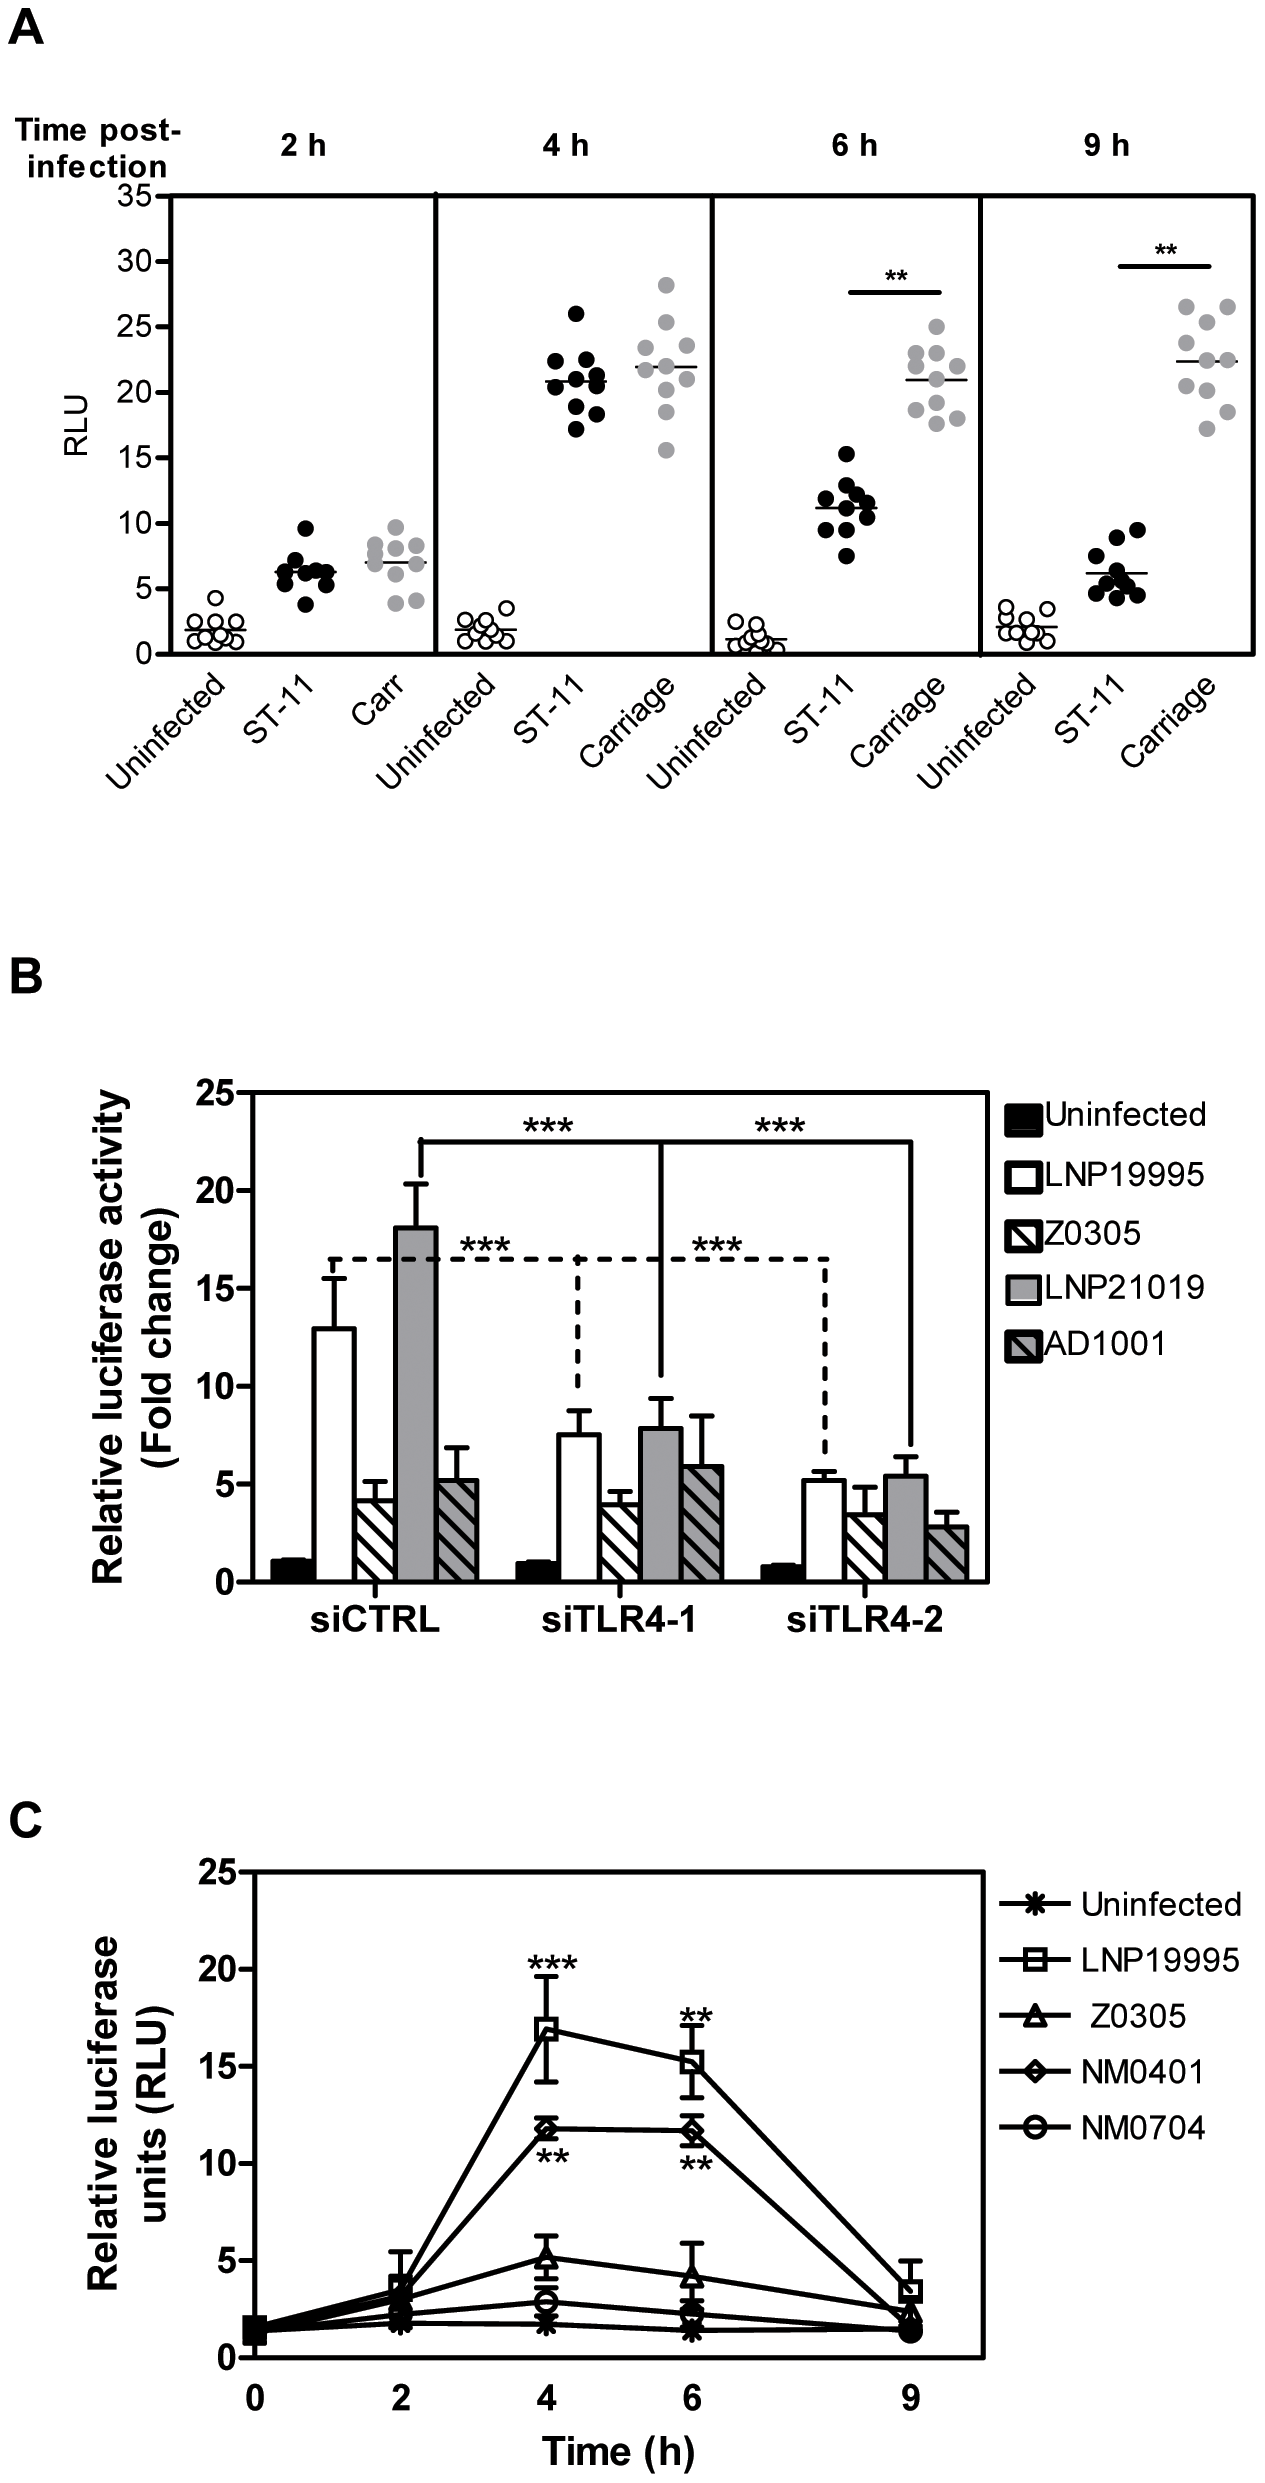 Invasive ST-11 but not carriage isolates impair NF-κB transcriptional and DNA binding activities in Hec-1B cells during the late steps of infection.